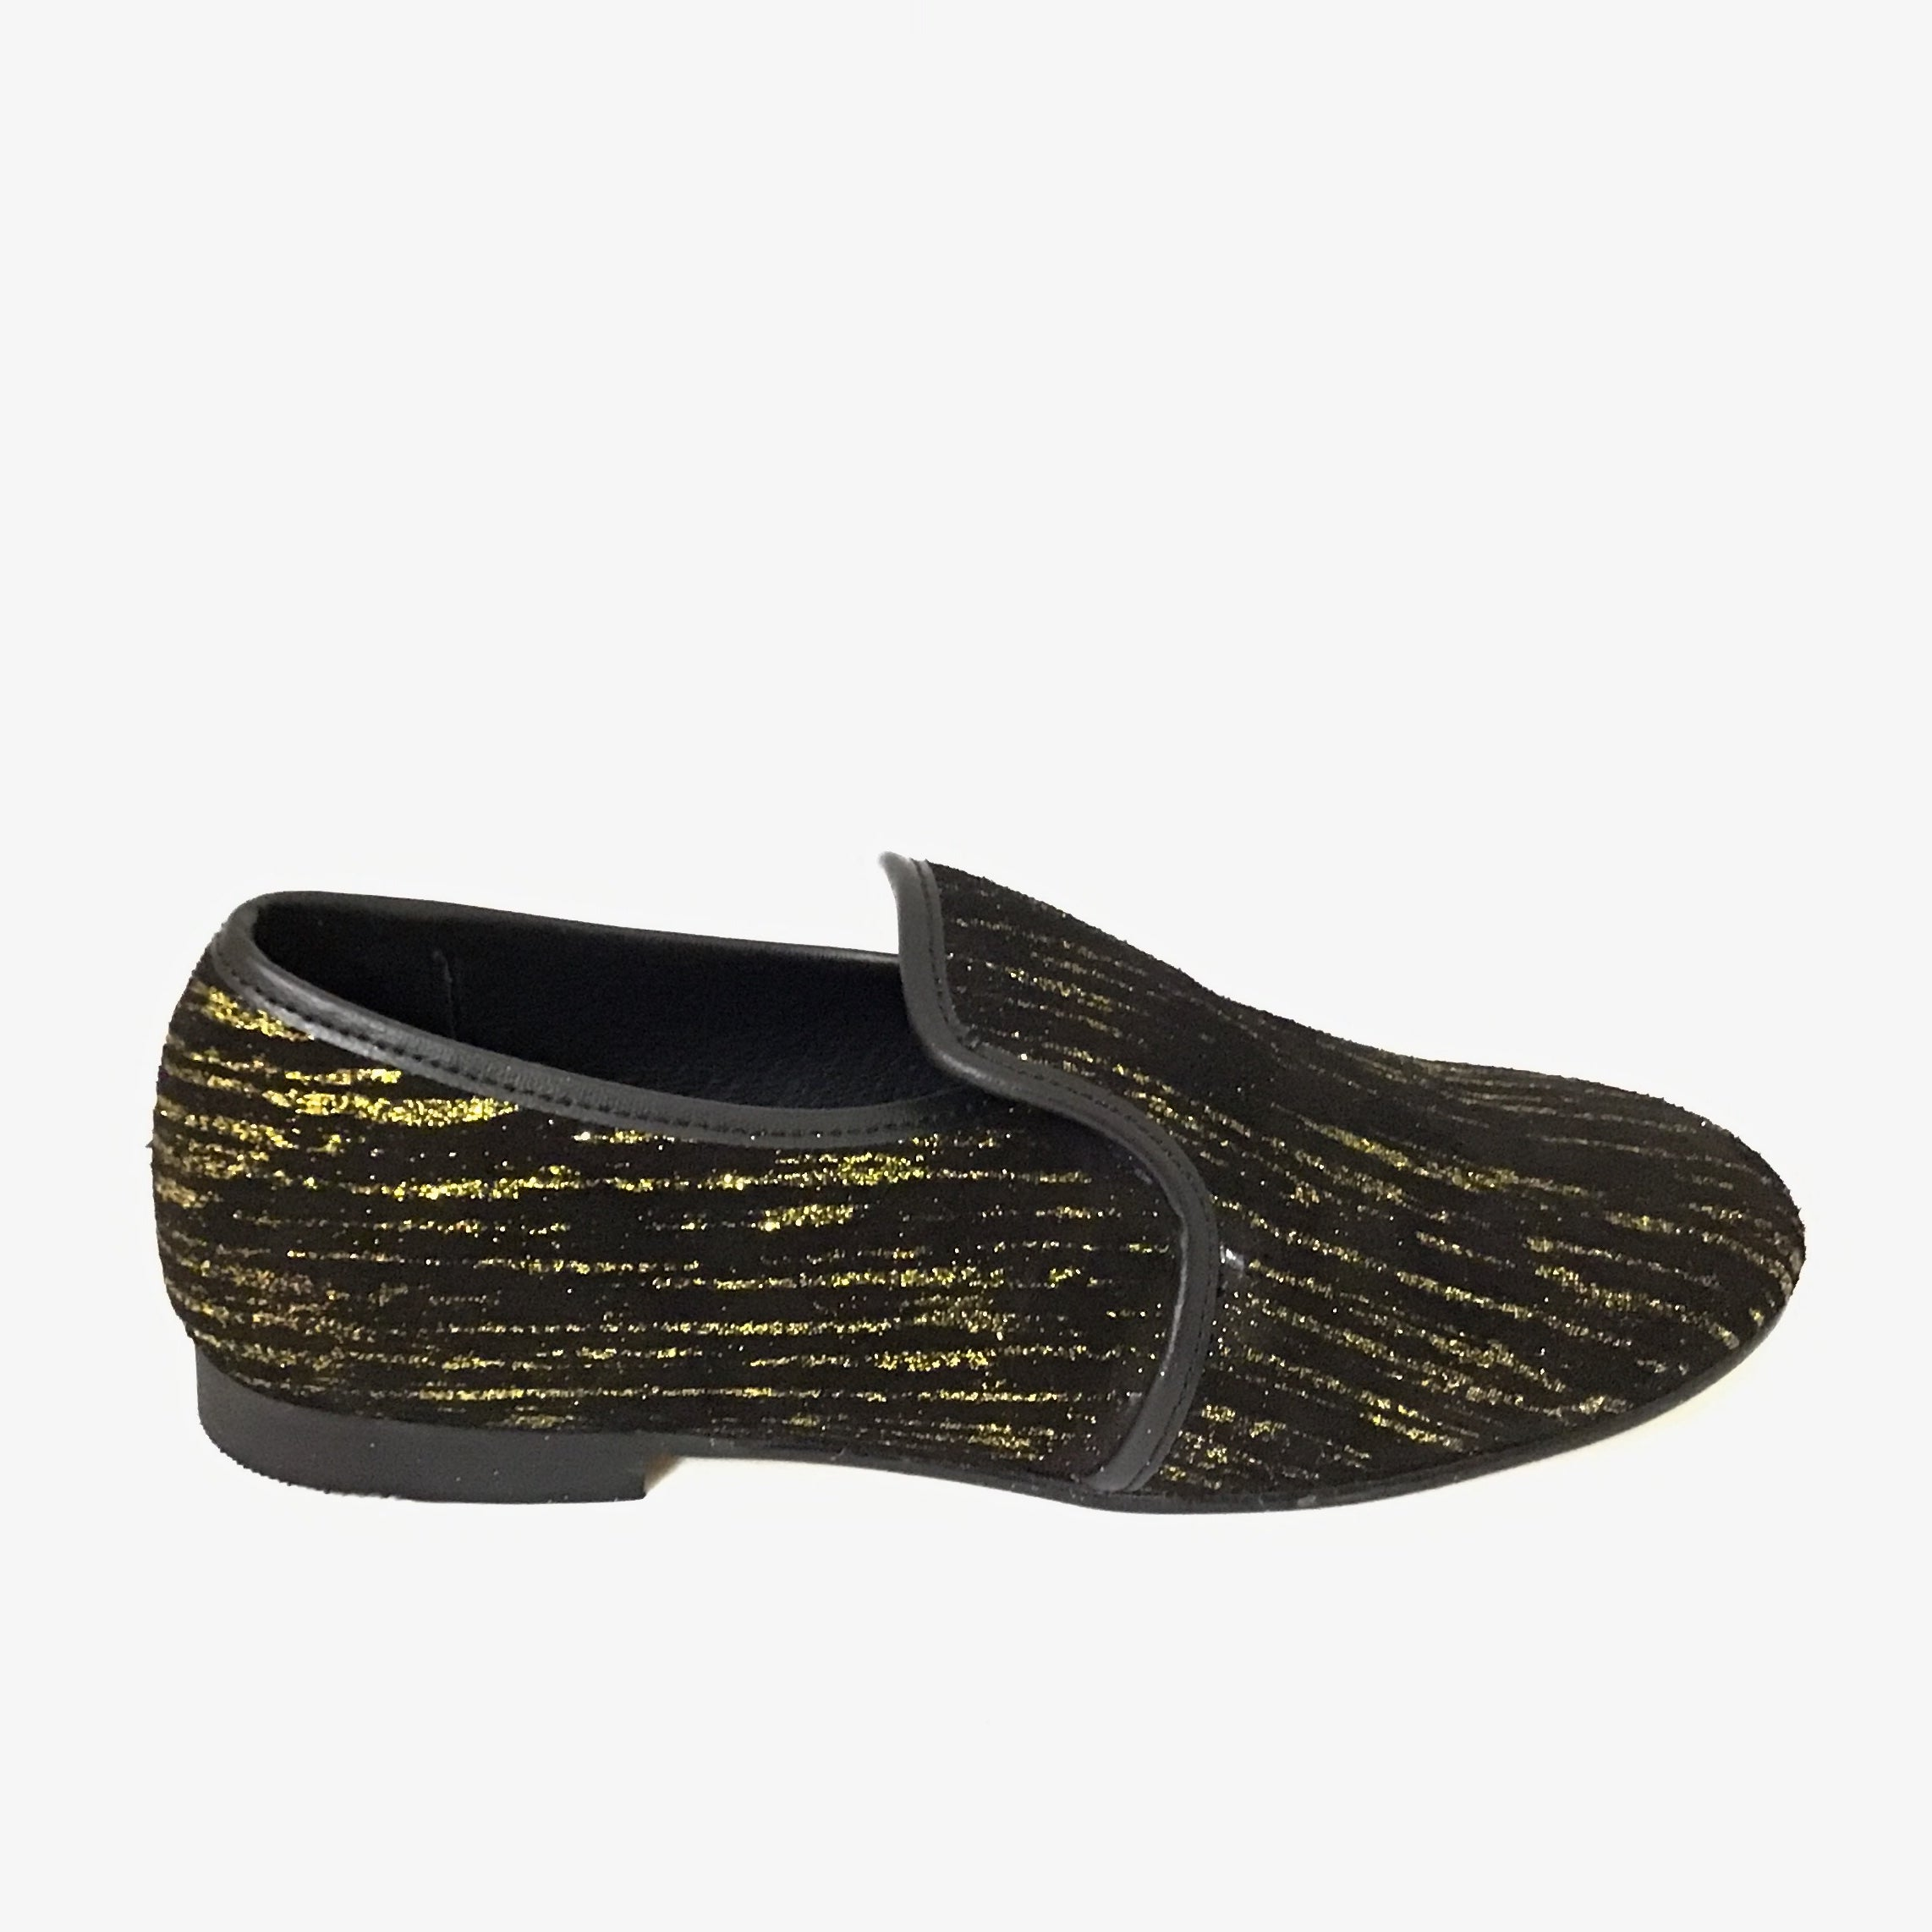 Luccini Black Suede Slip On with Gold Streaks